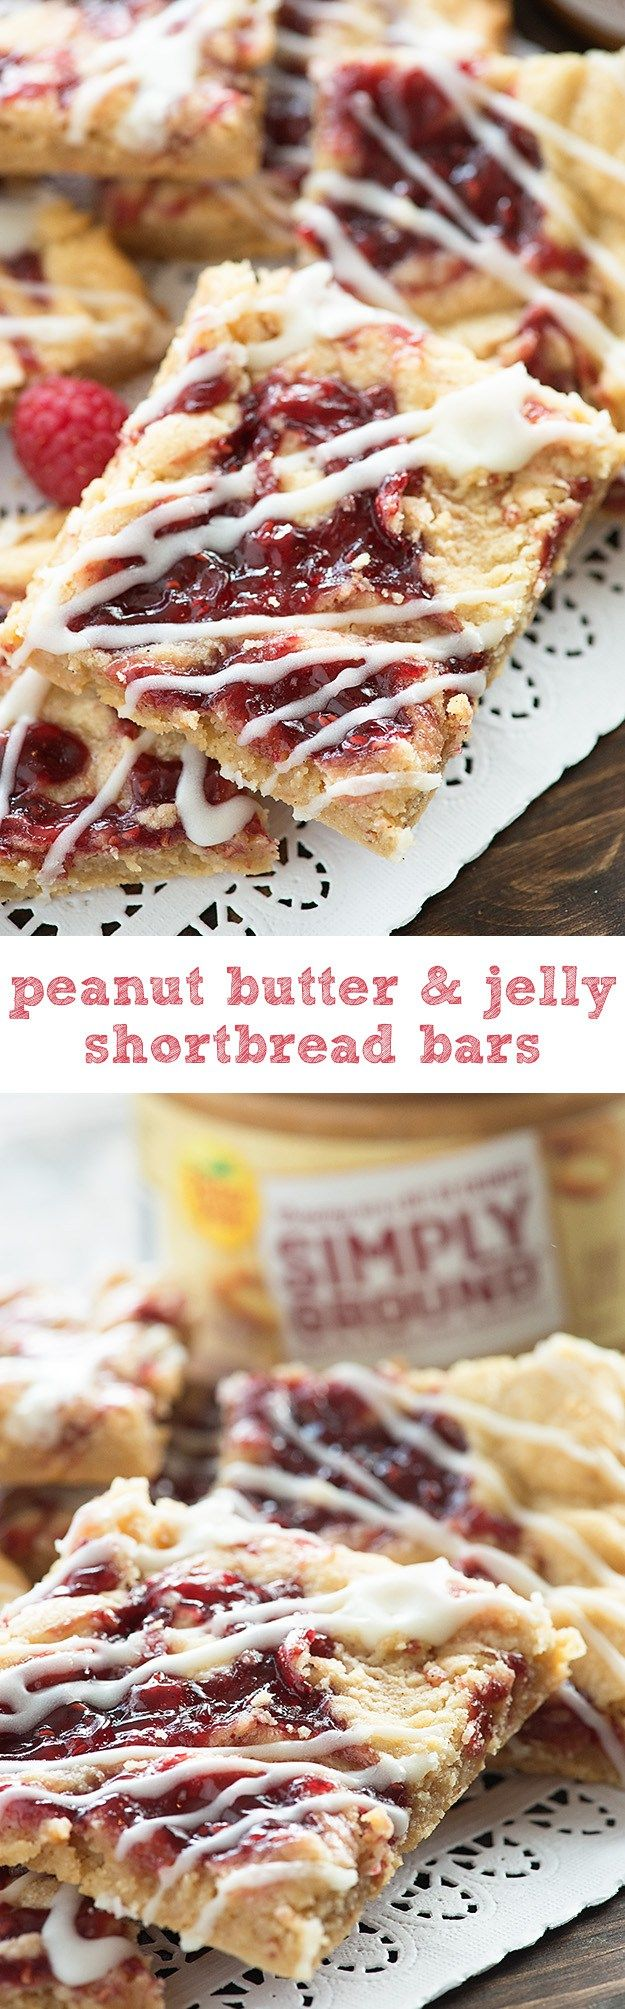 Peanut Butter and Jelly Shortbread Bars! How fun would it be to sneak these in a lunchbox?